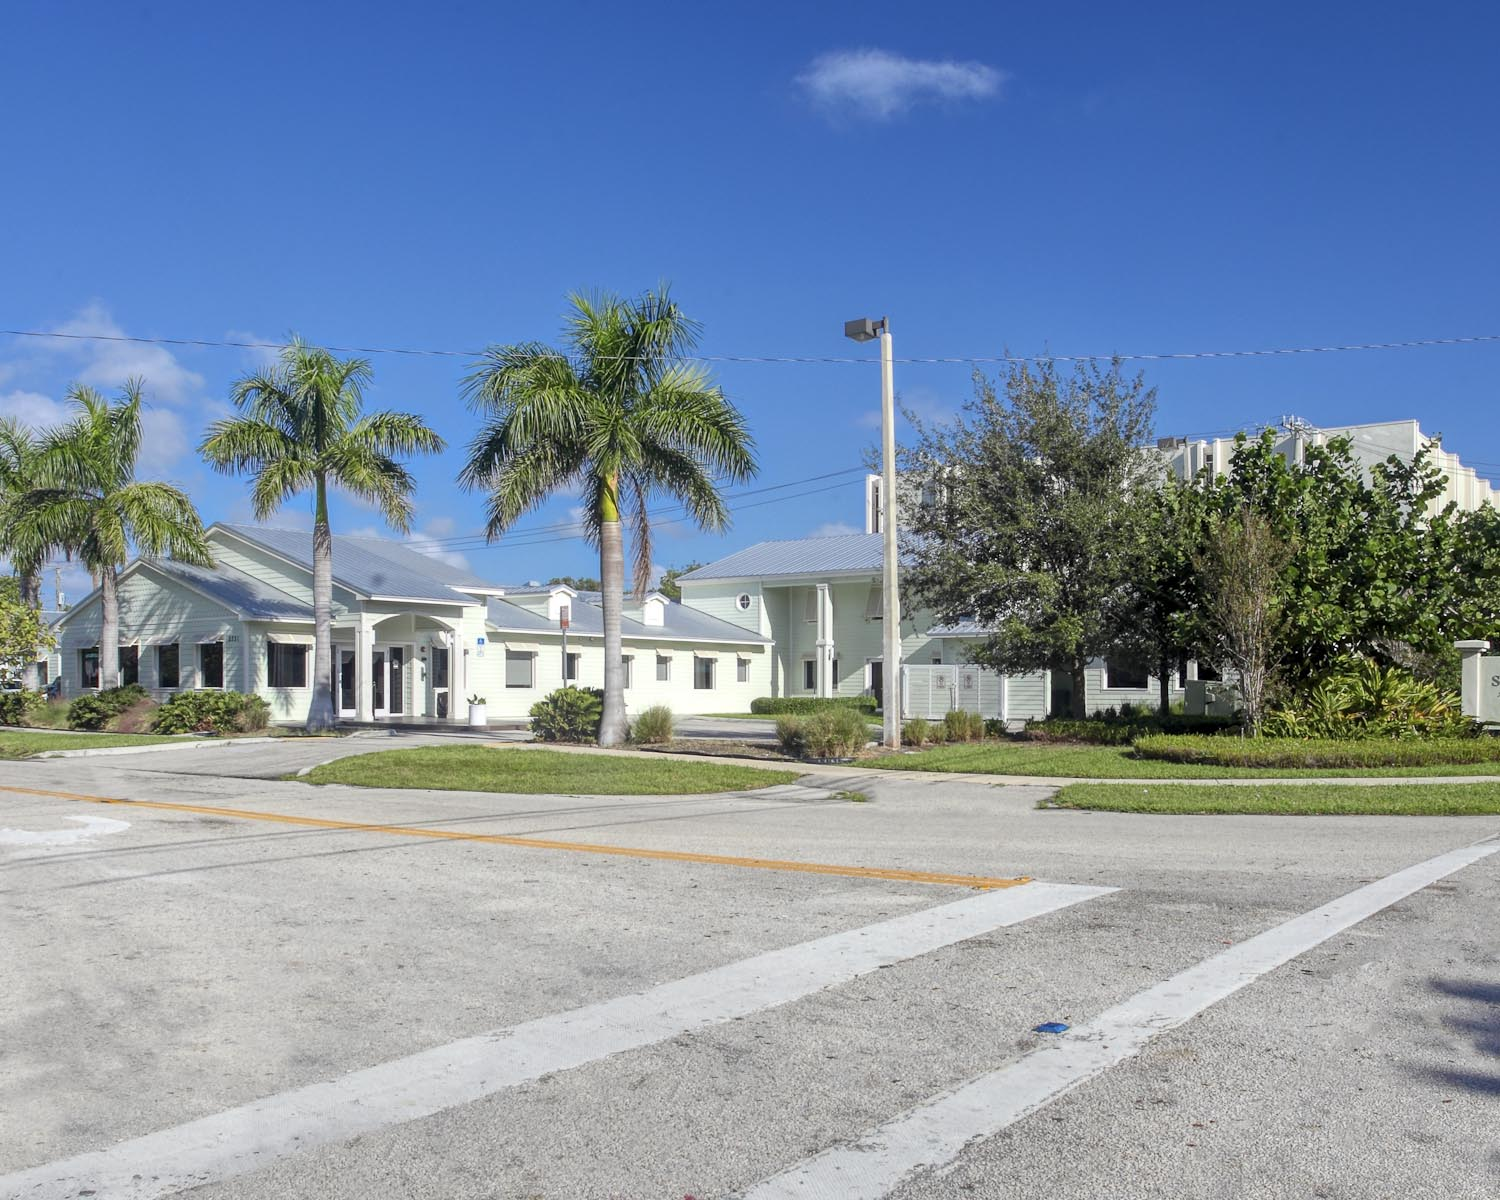 Fort Lauderdale detox center image 2 full service medical detox center just minutes from fort lauderdale beaches